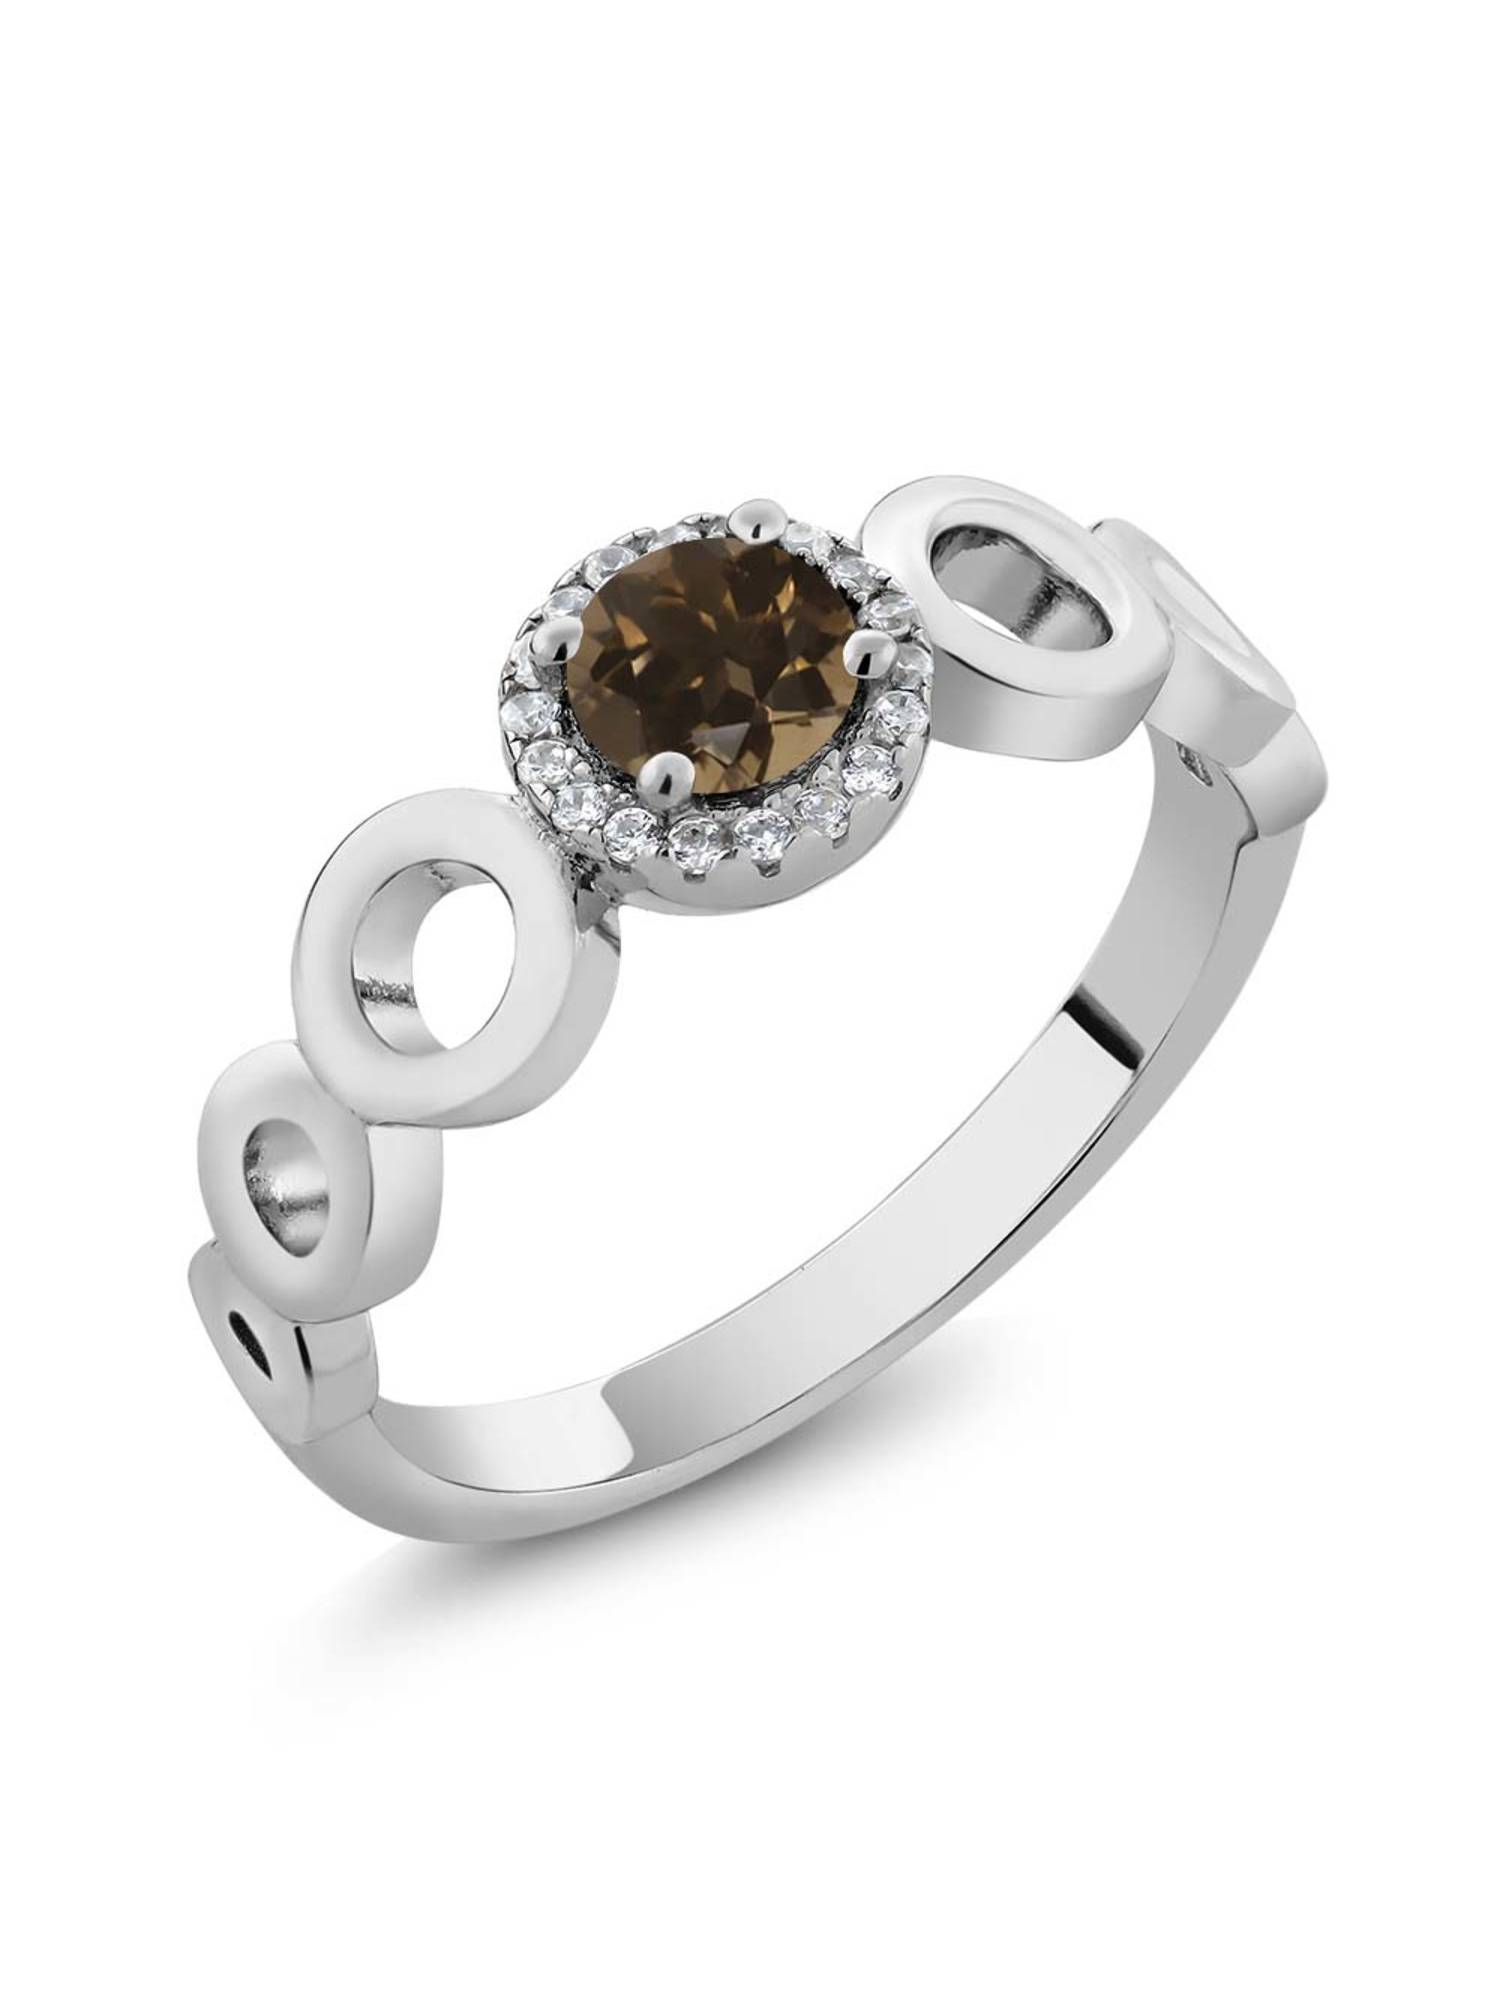 0.68 Ct Round Brown Smoky Quartz 925 Sterling Silver Ring